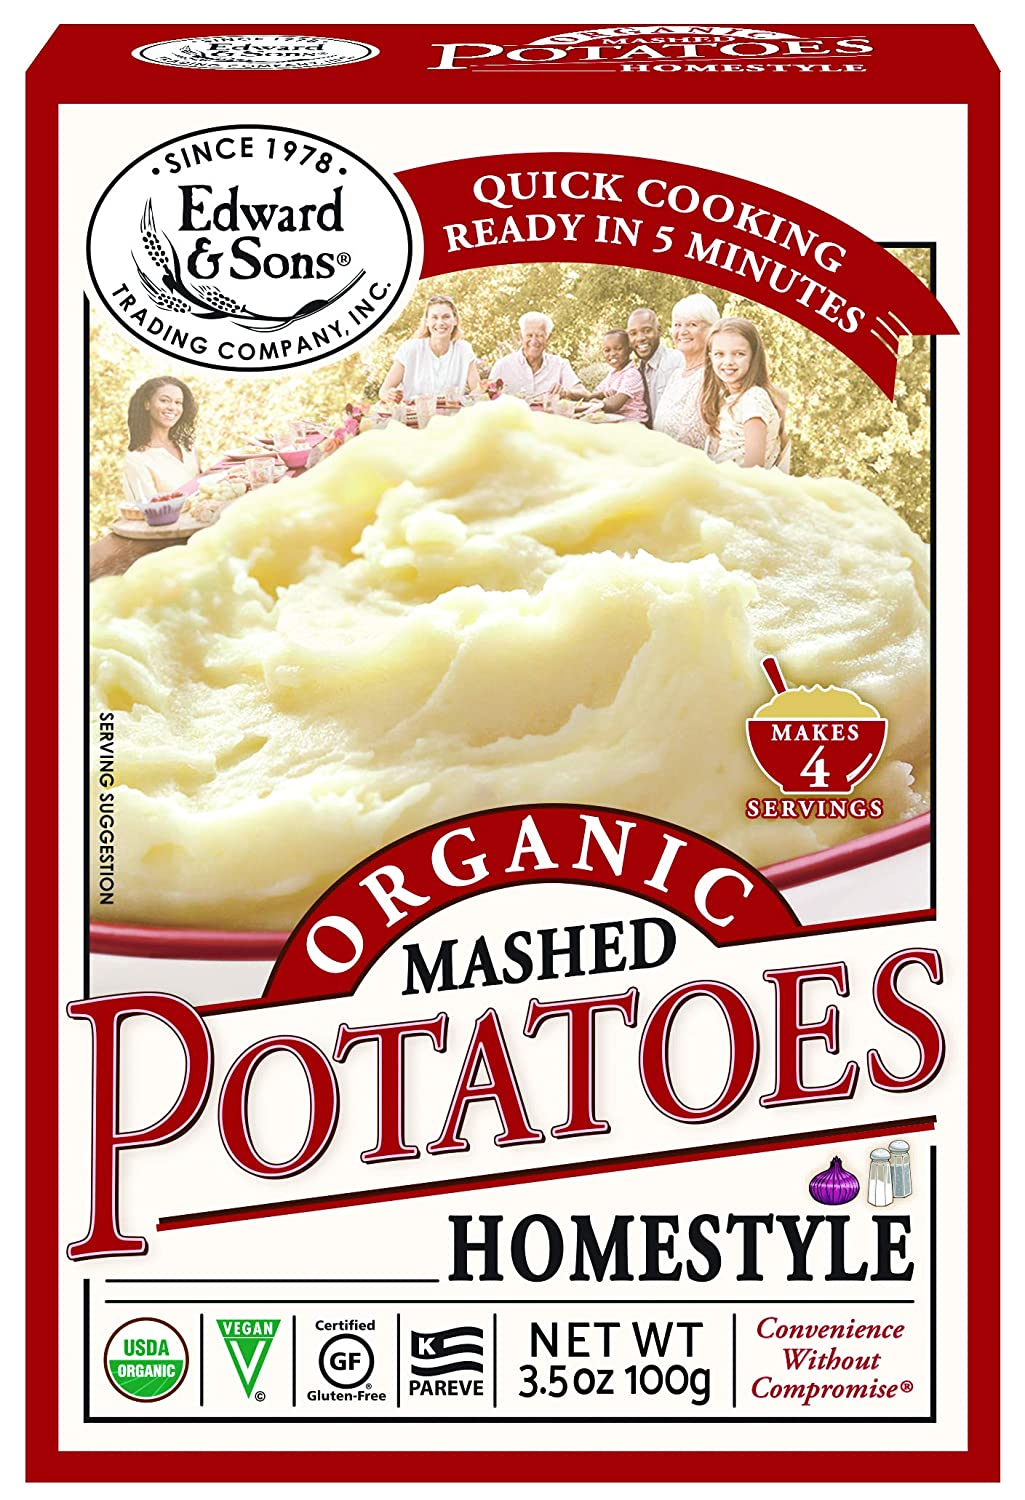 Edward & Sons Organic Mashed Potatoes Home Style